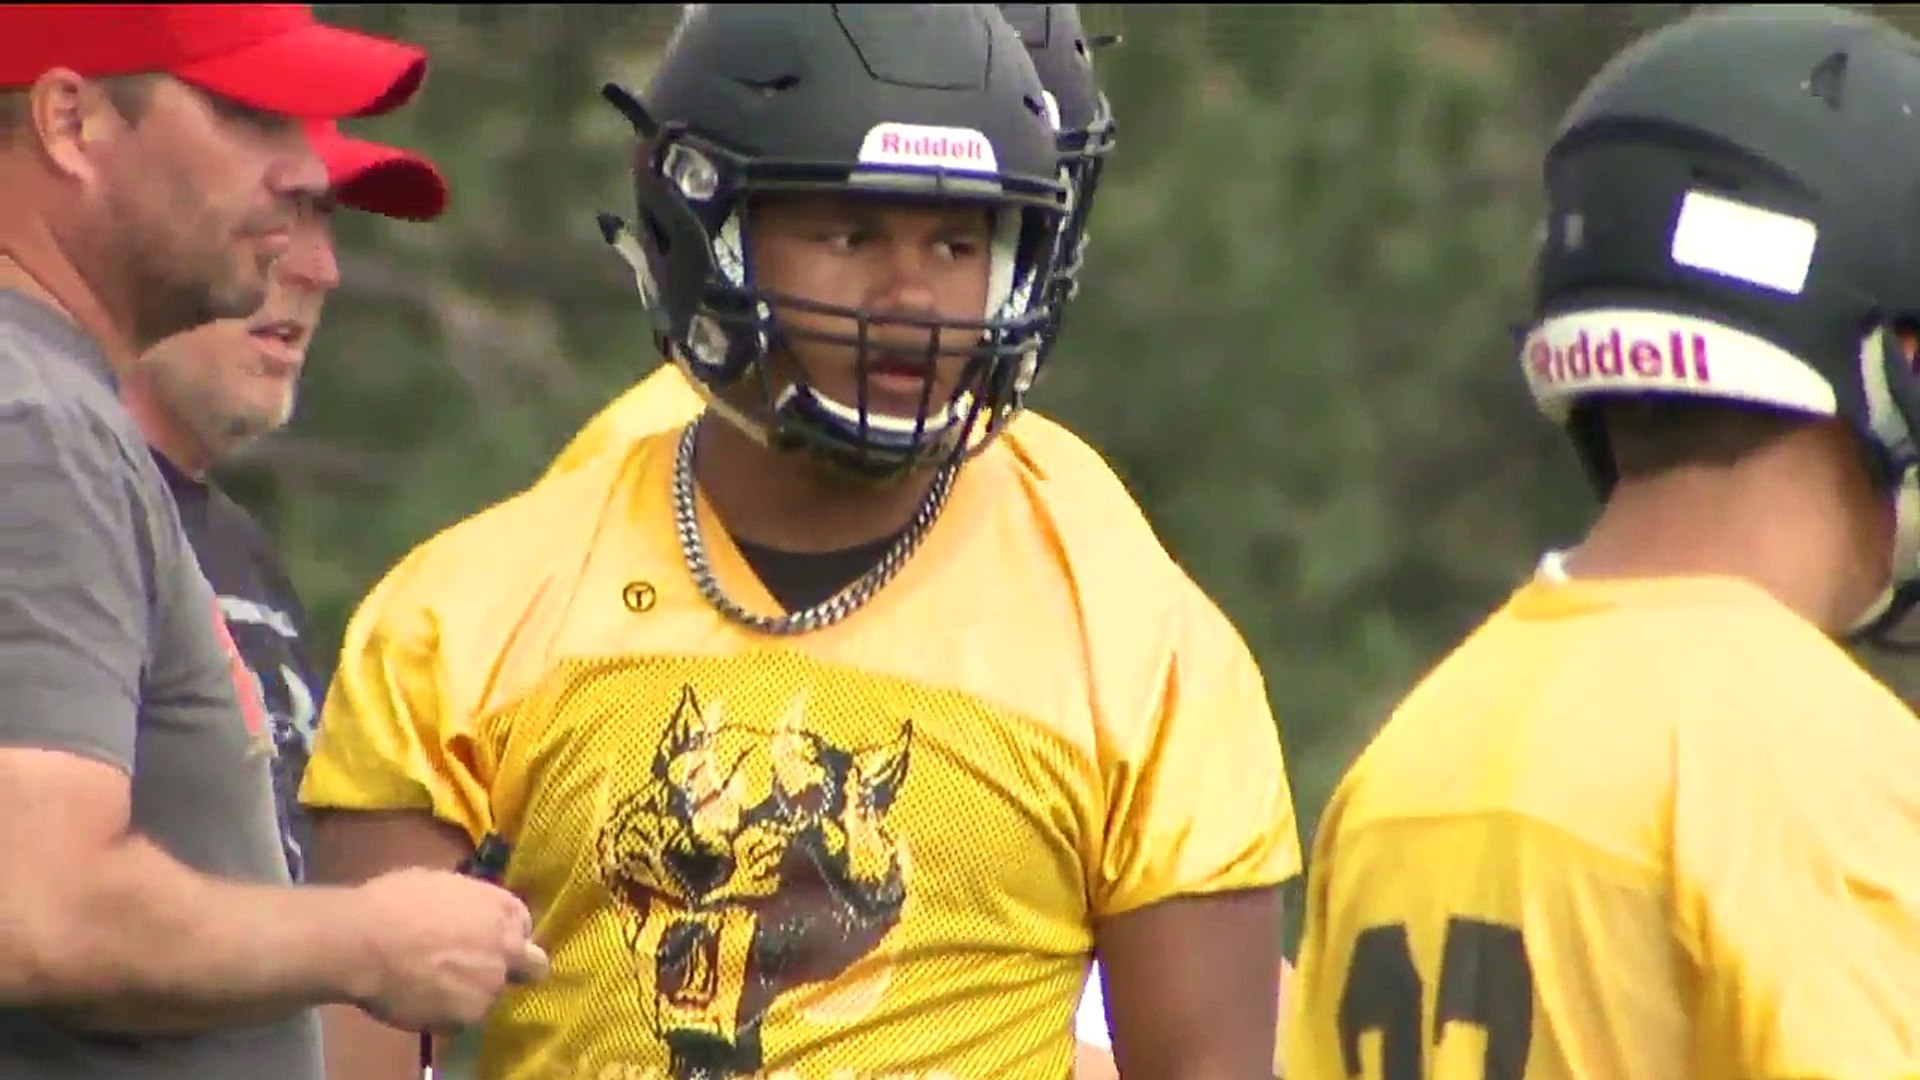 One-Handed High School Football Player Inspires Teammates, NFL Players